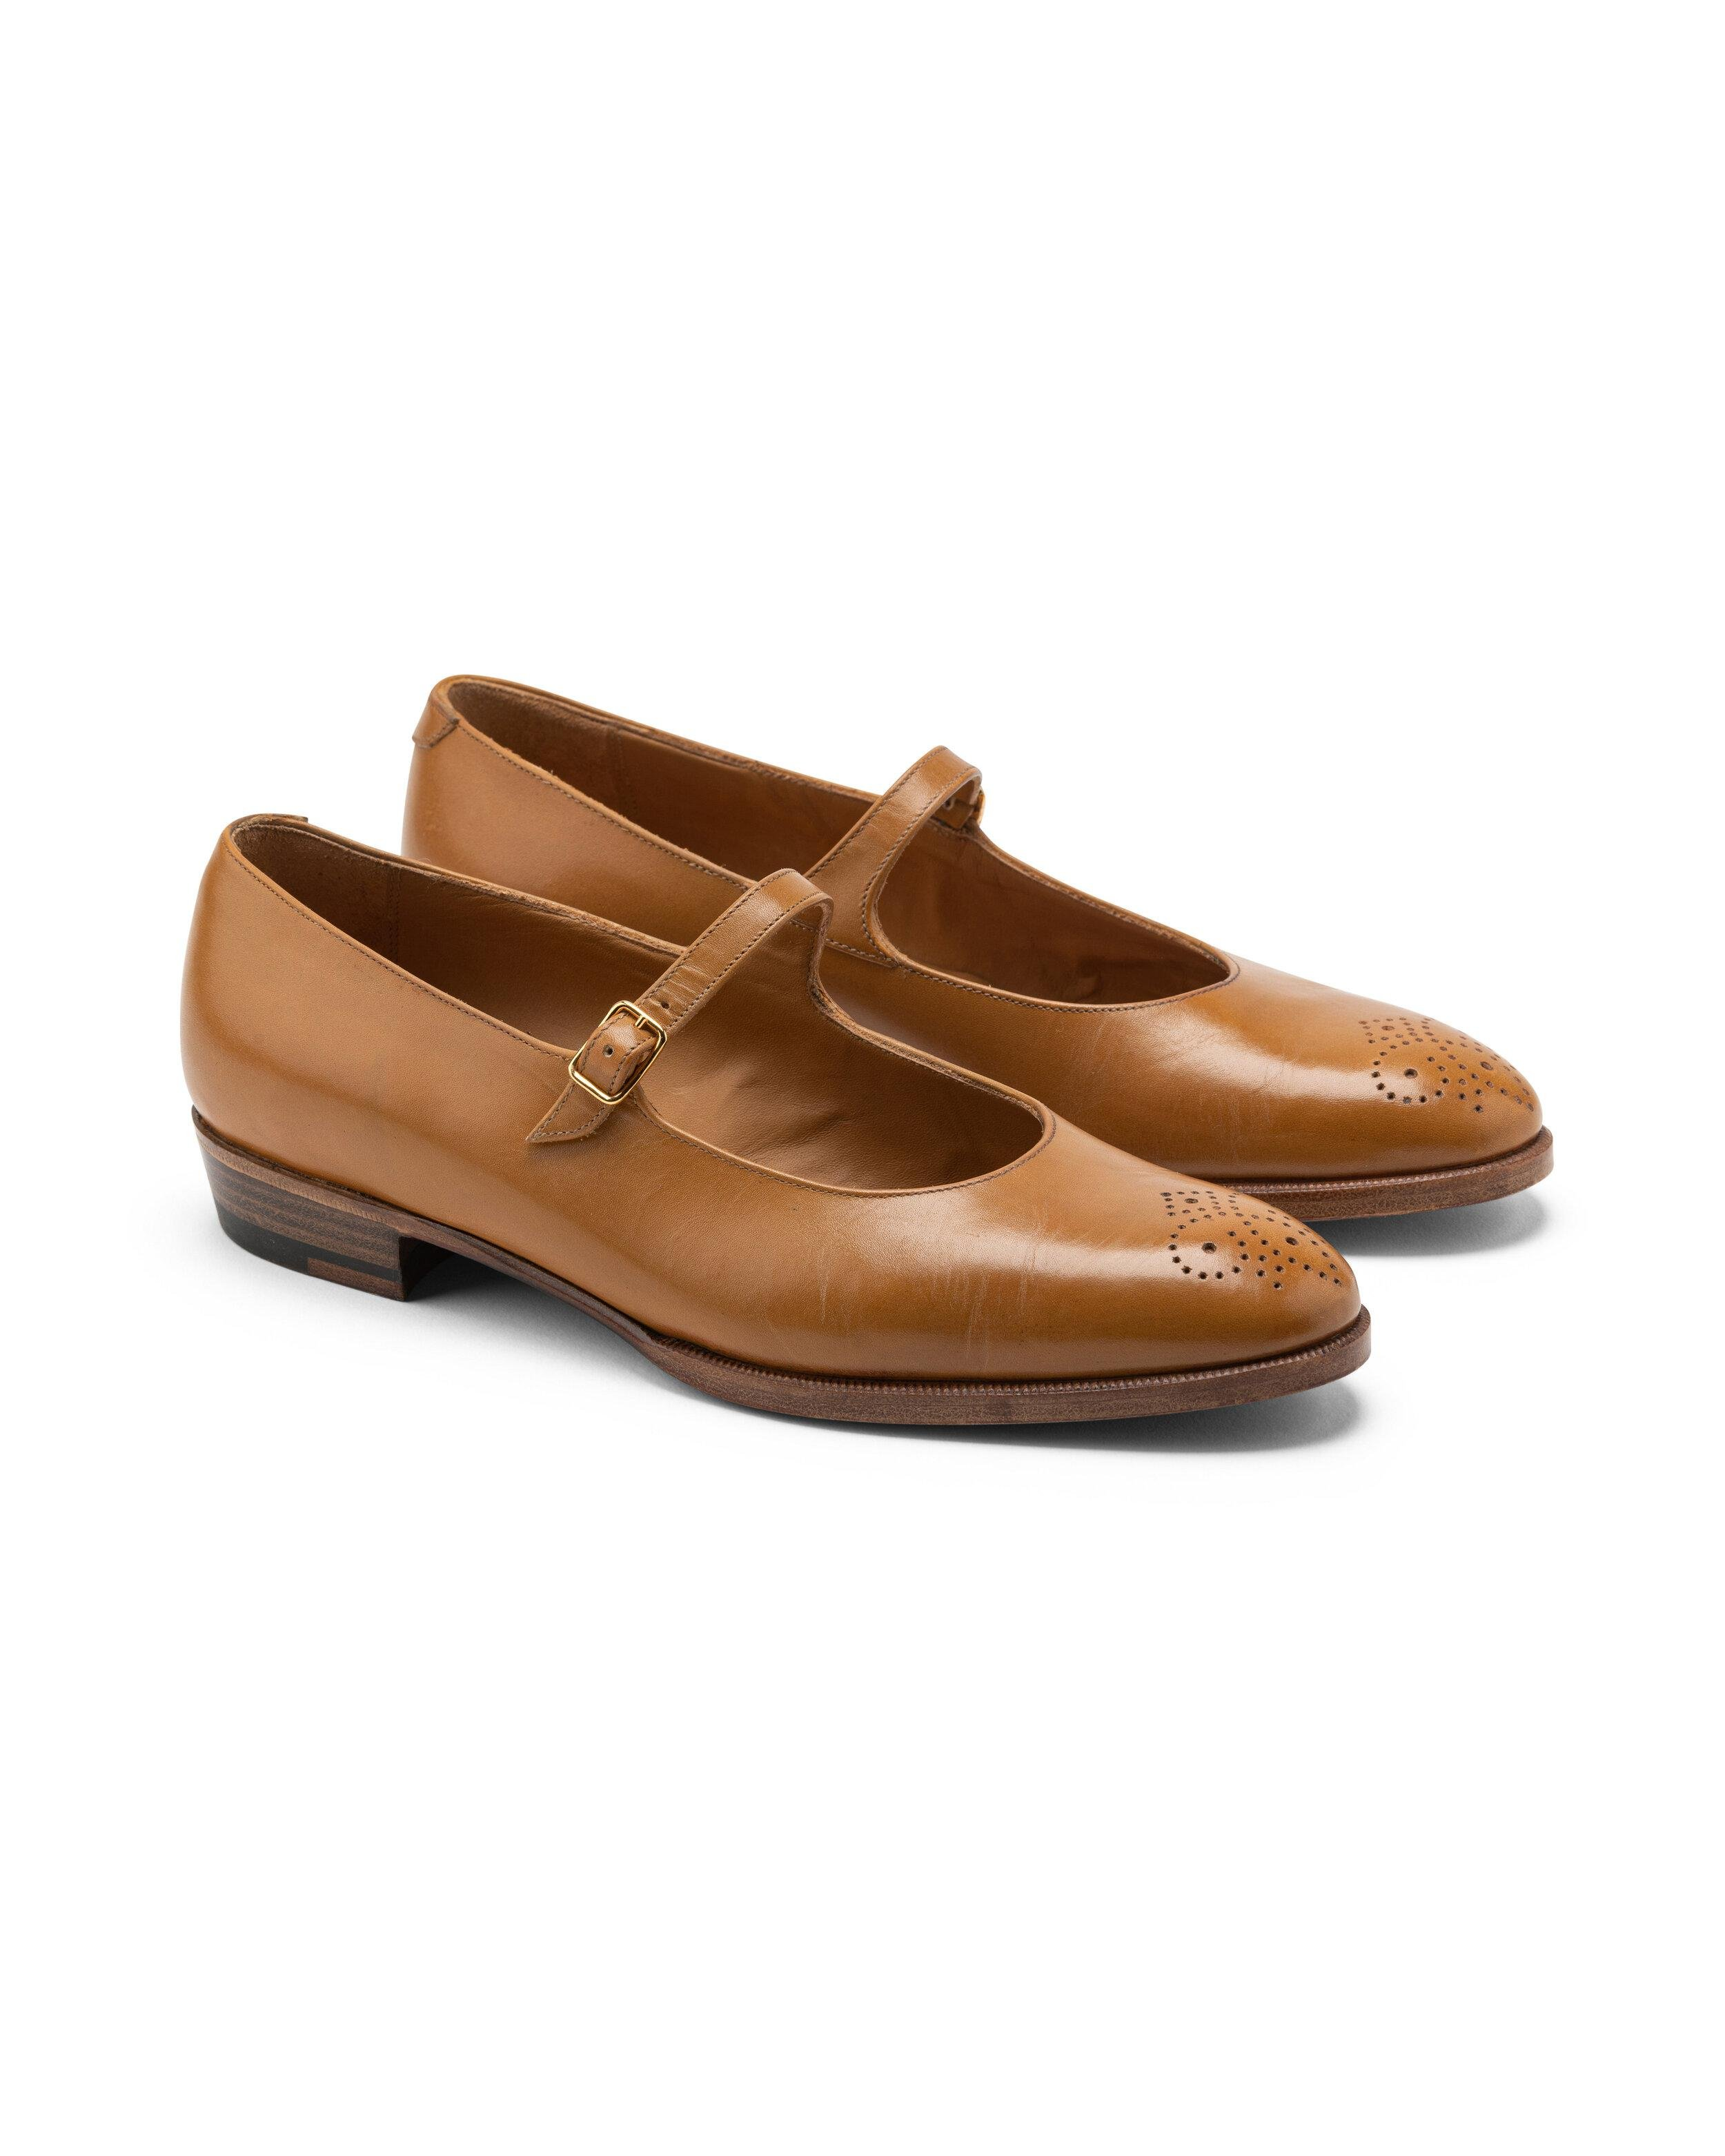 ODPEssentials Classic Mary Jane - Honey Leather 3